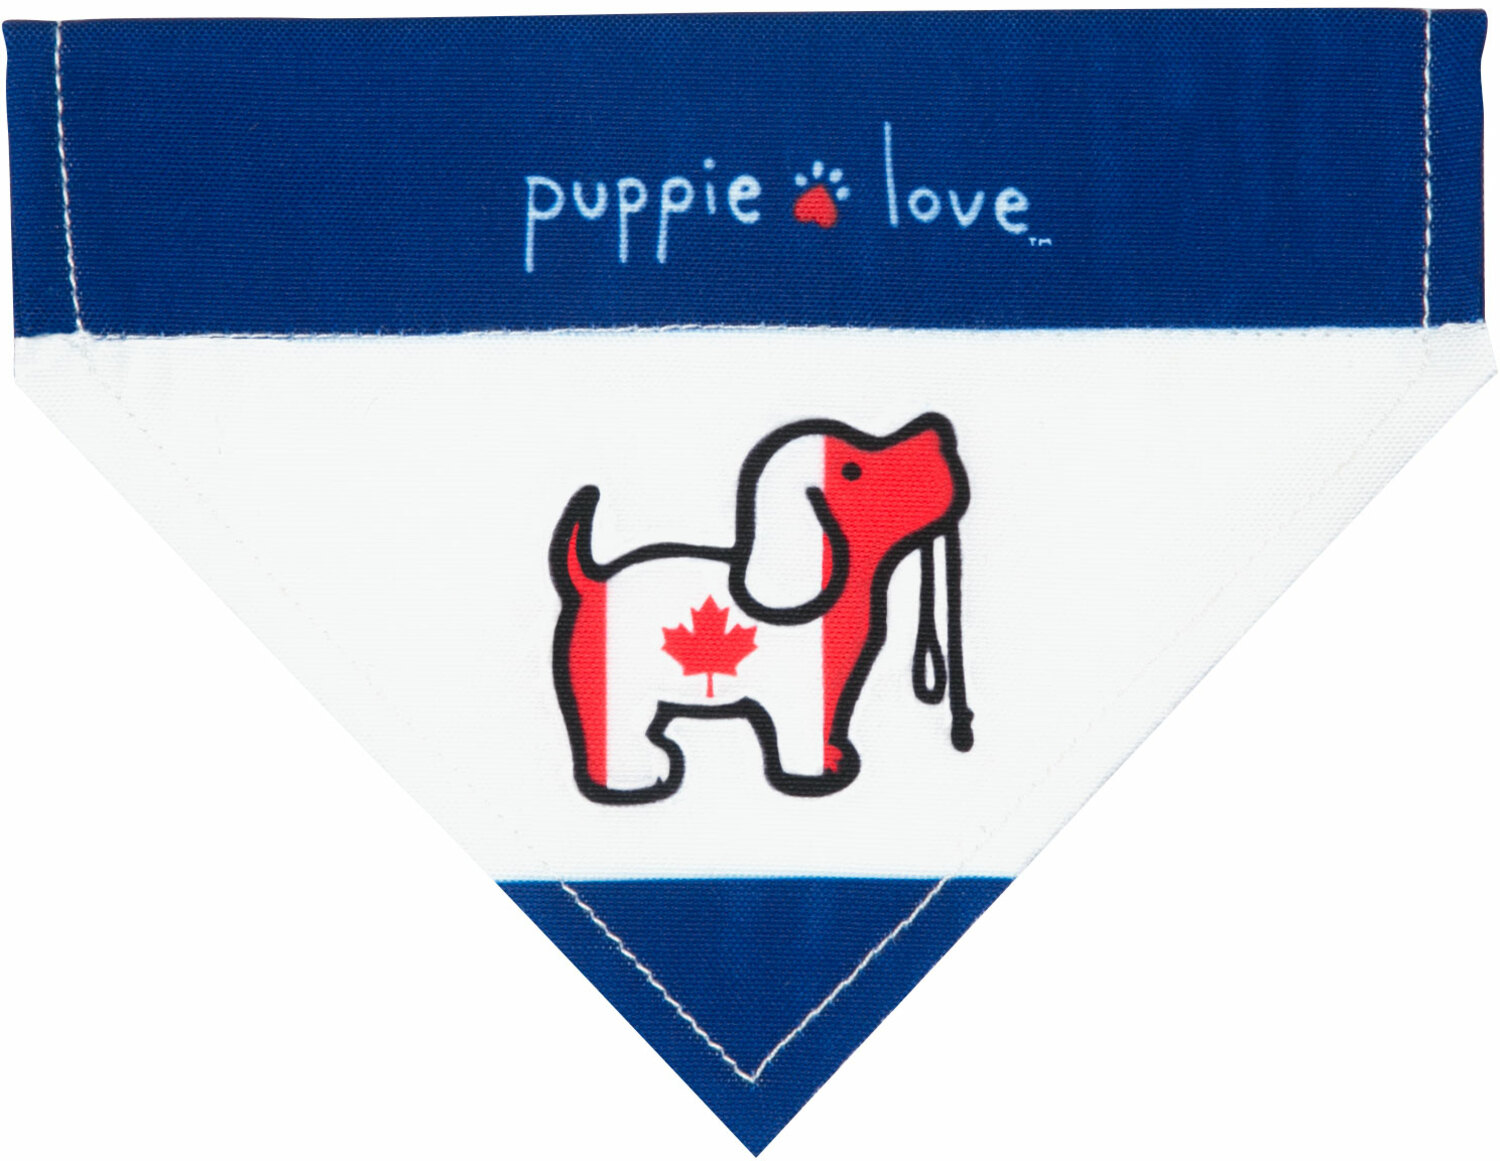 "Canada by Puppie Love - Canada - 7"" x 5"" Canvas Slip on Pet Bandana"